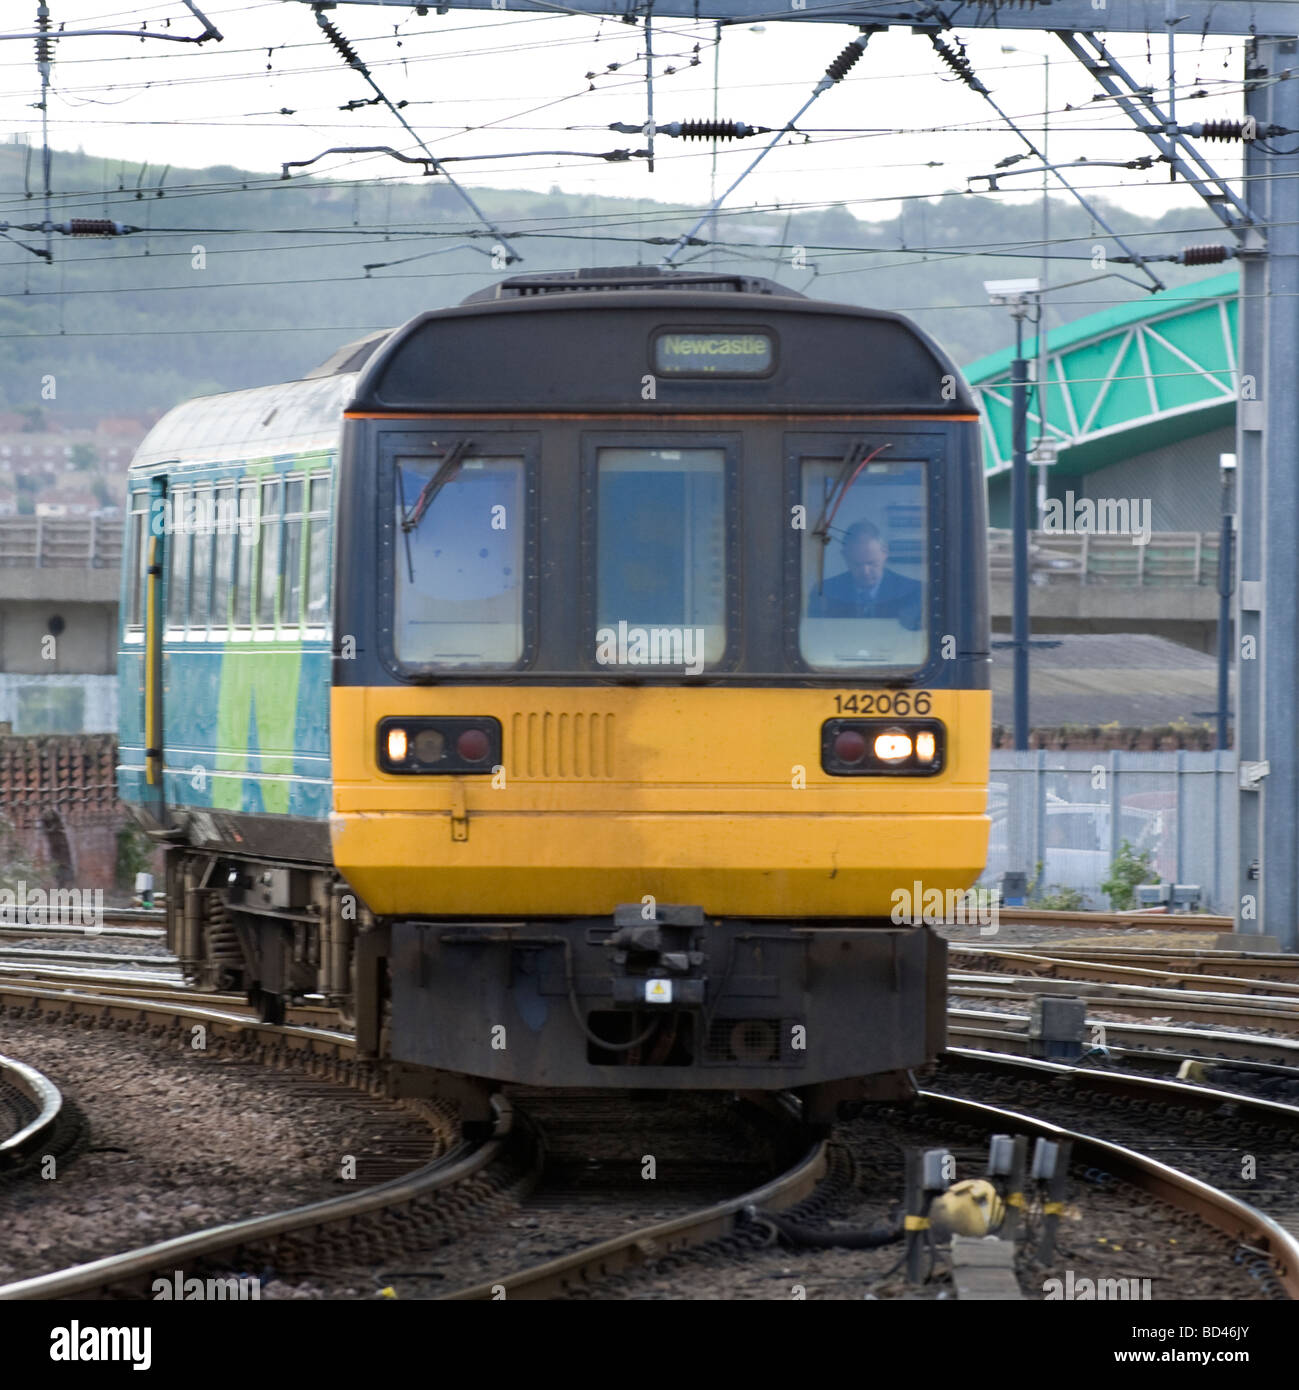 British Class 142 commuter train approaches Newcastle station, Newcastle upon Tyne, Tyne and Wear, England, UK - Stock Image